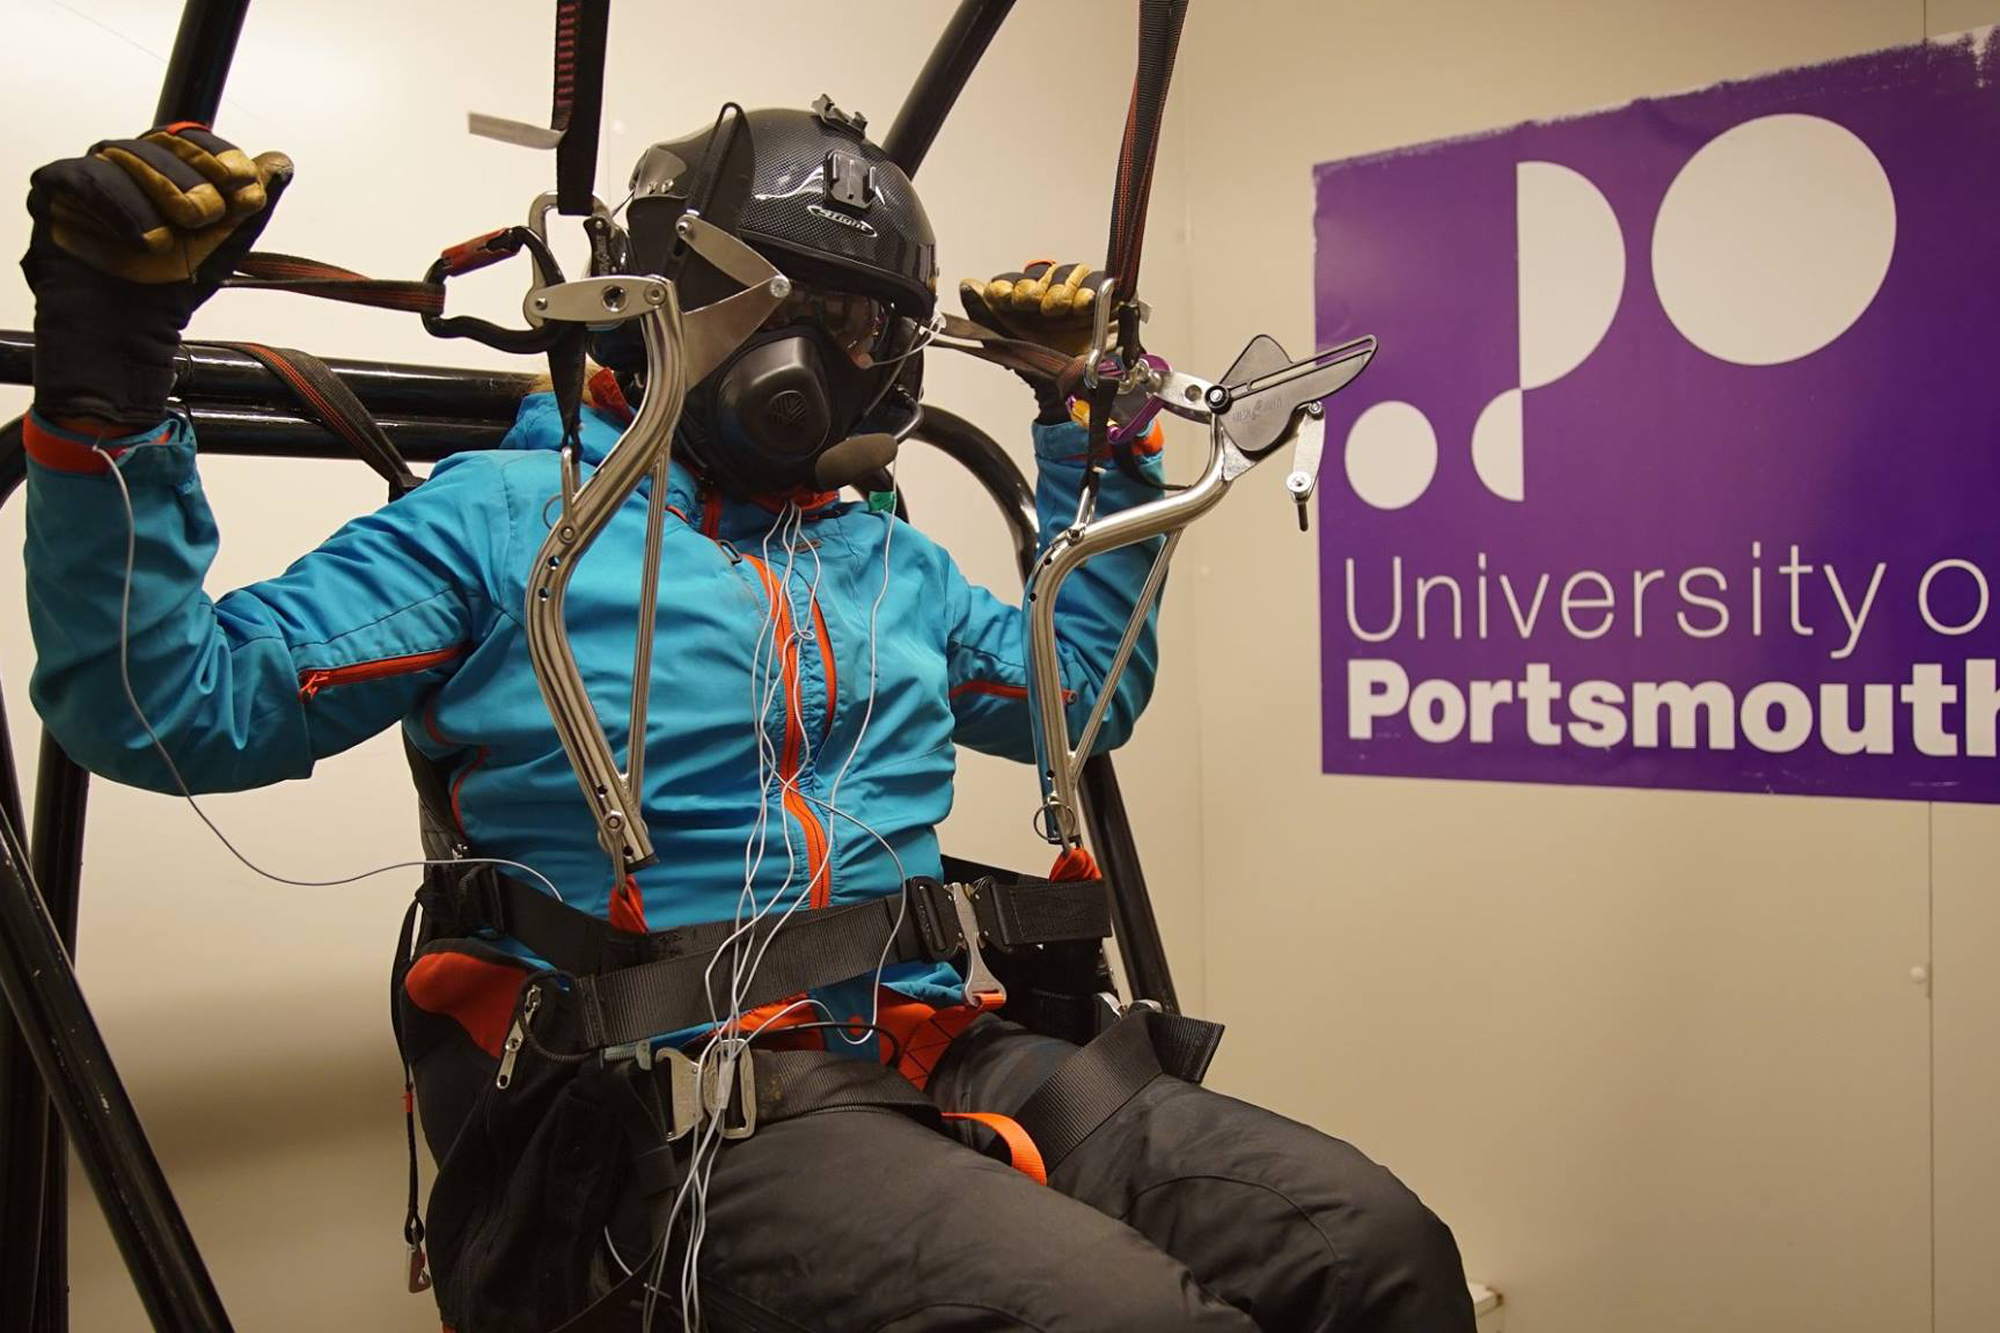 Cold chamber testing at University of Portsmouth